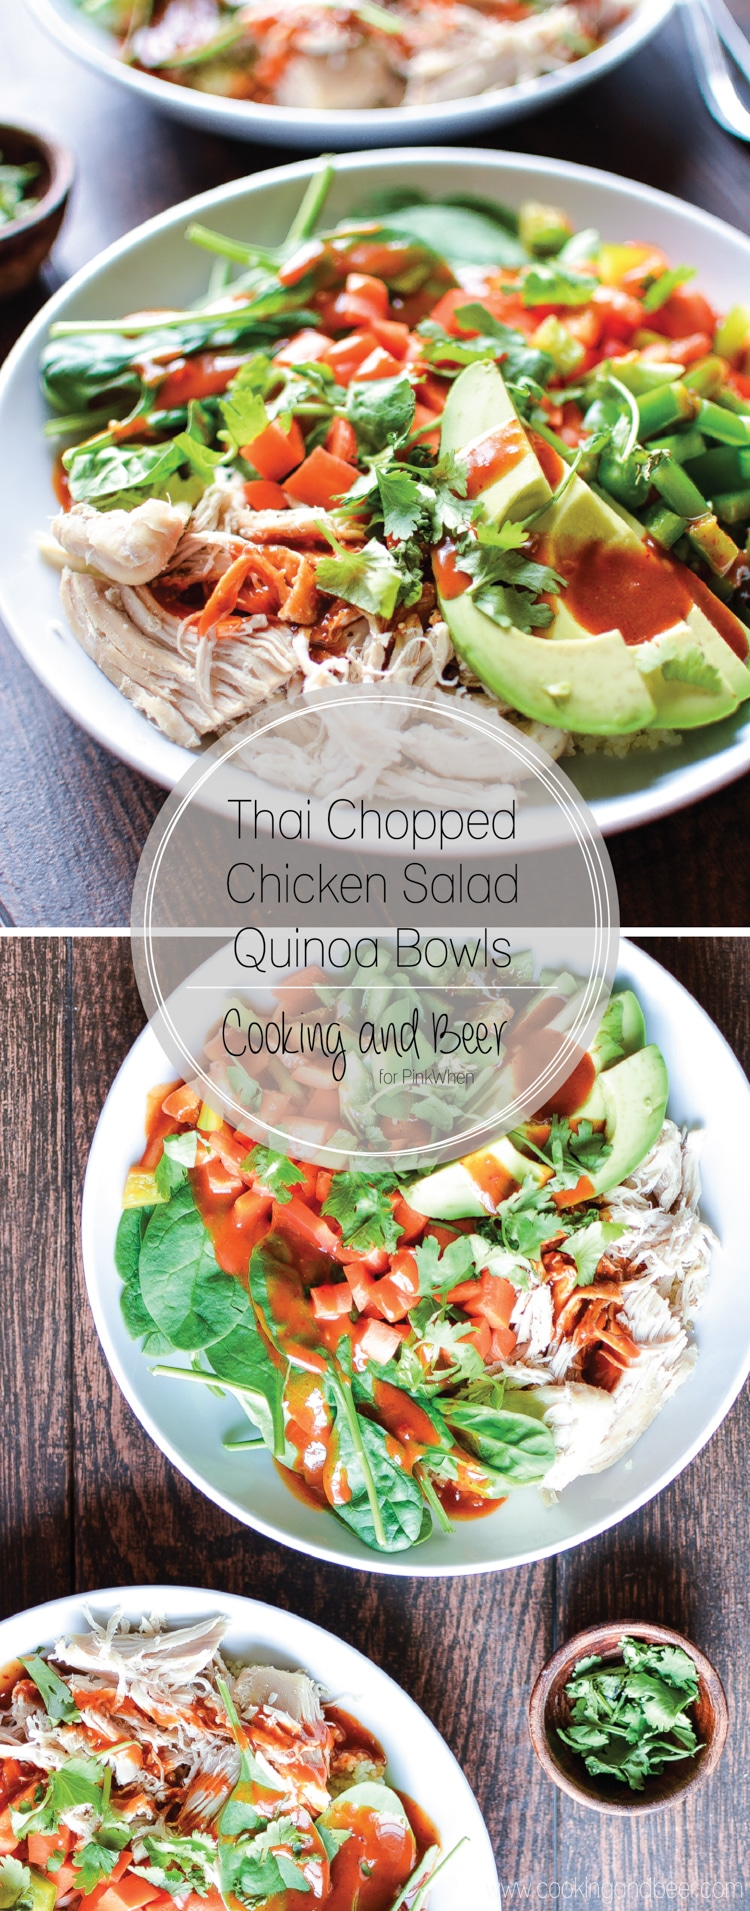 Thai Chopped Chicken Salad Quinoa Bowls